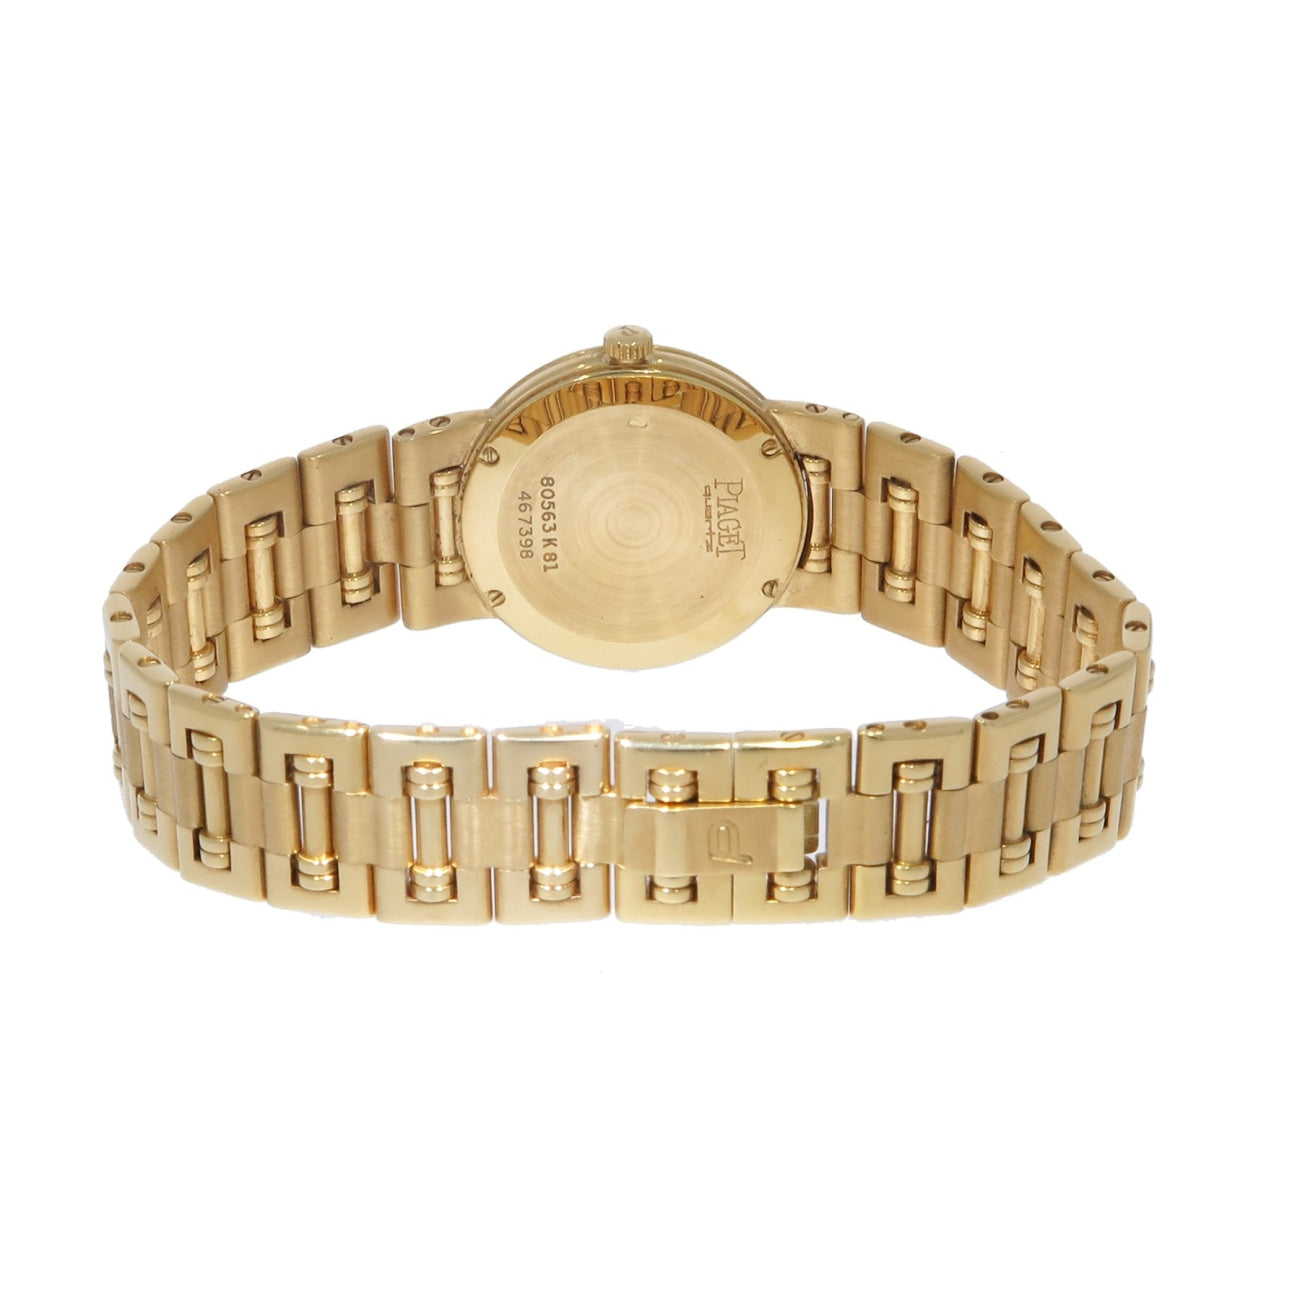 Pre-Owned Piaget Watches - Dancer | Manfredi Jewels